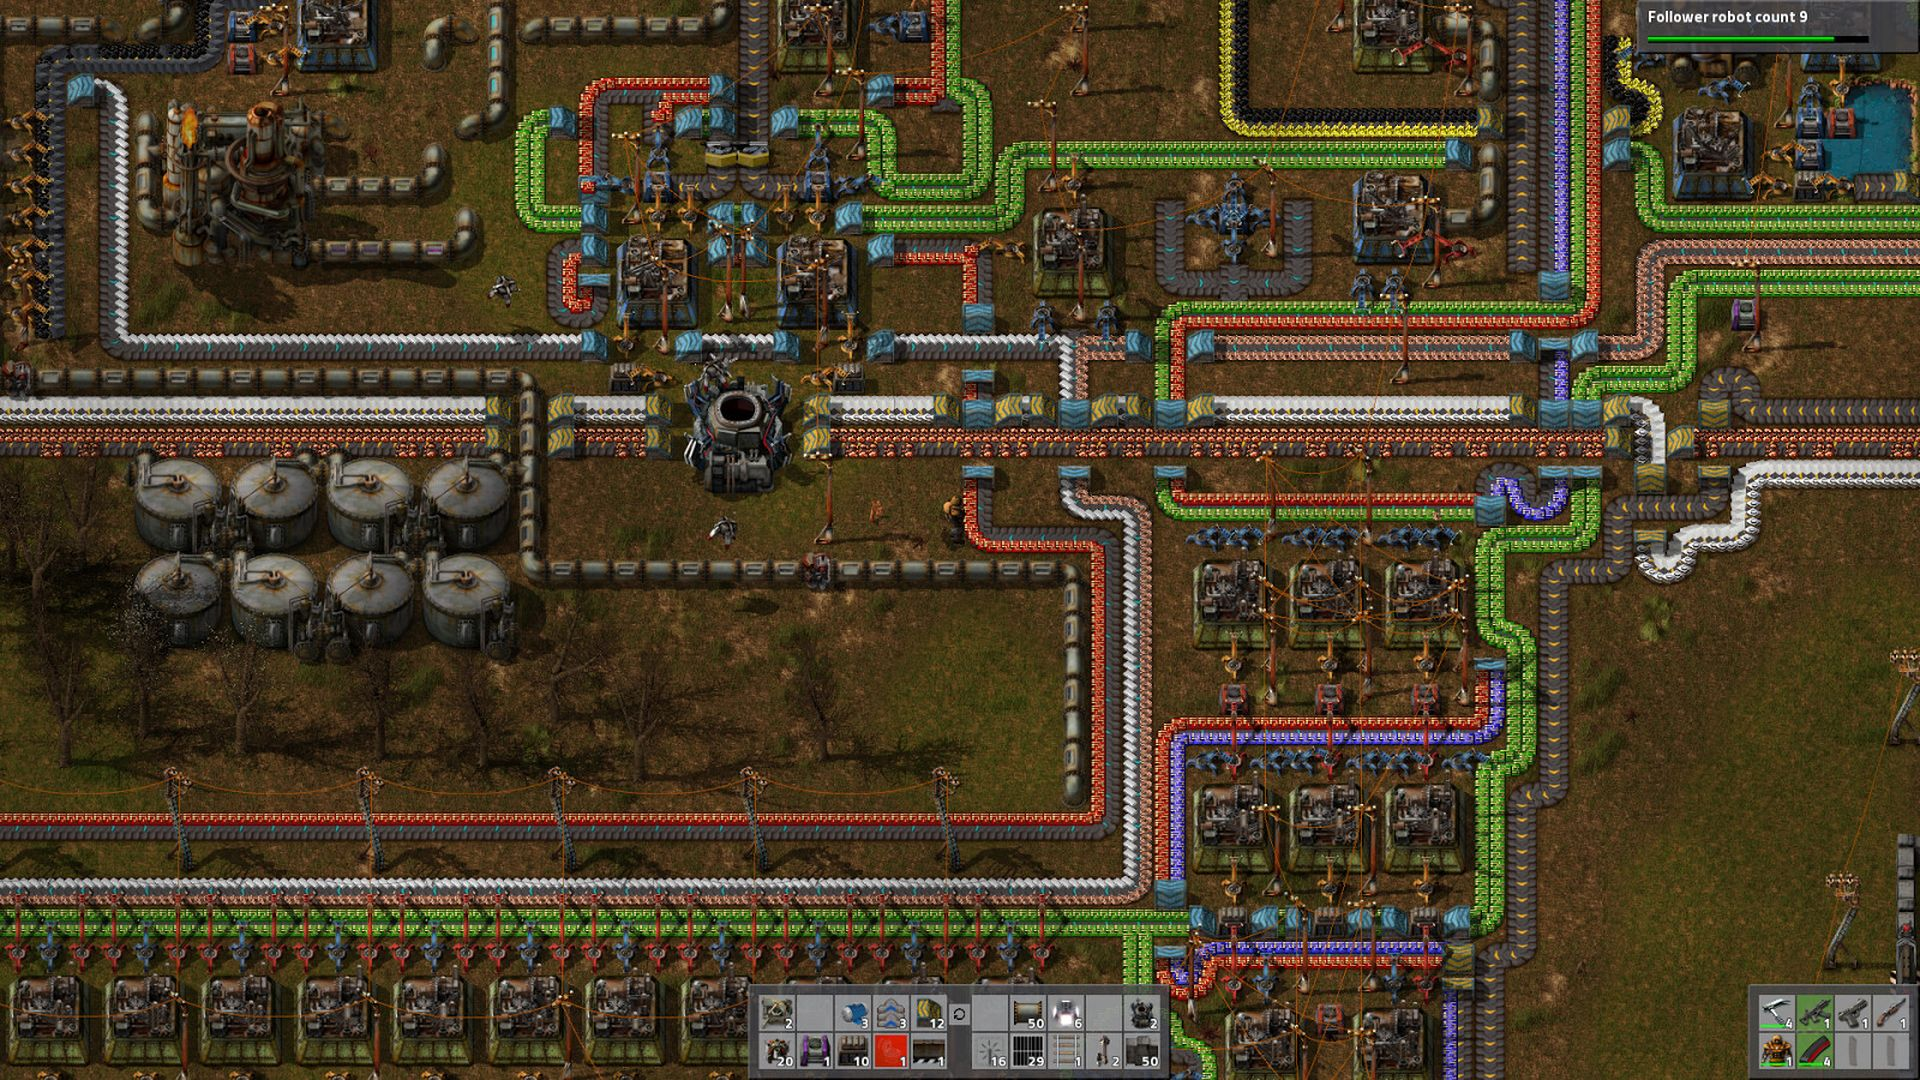 Factorio 1.0 Finally Dated for 25 September 2020 - Capsule Computers